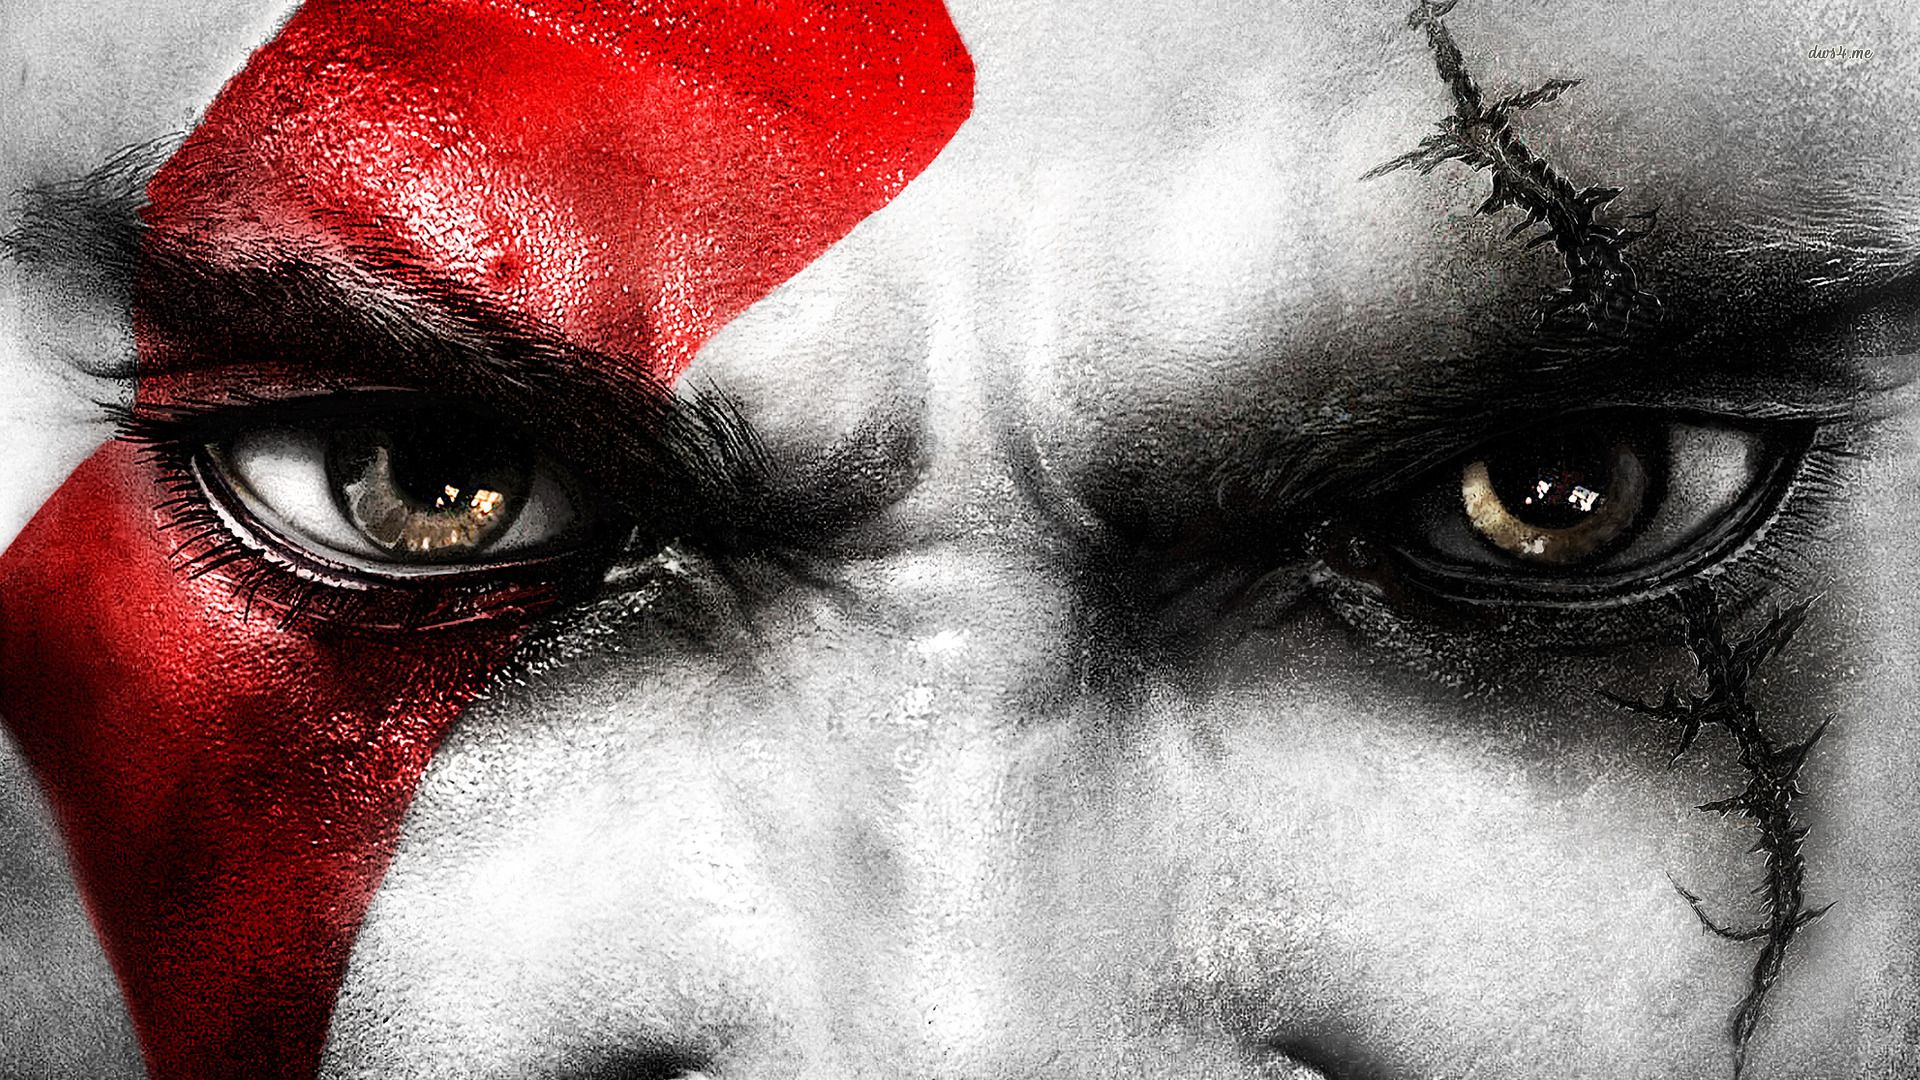 Kratos God Of War Kratos God Of War 3 Wallpaper Kratos